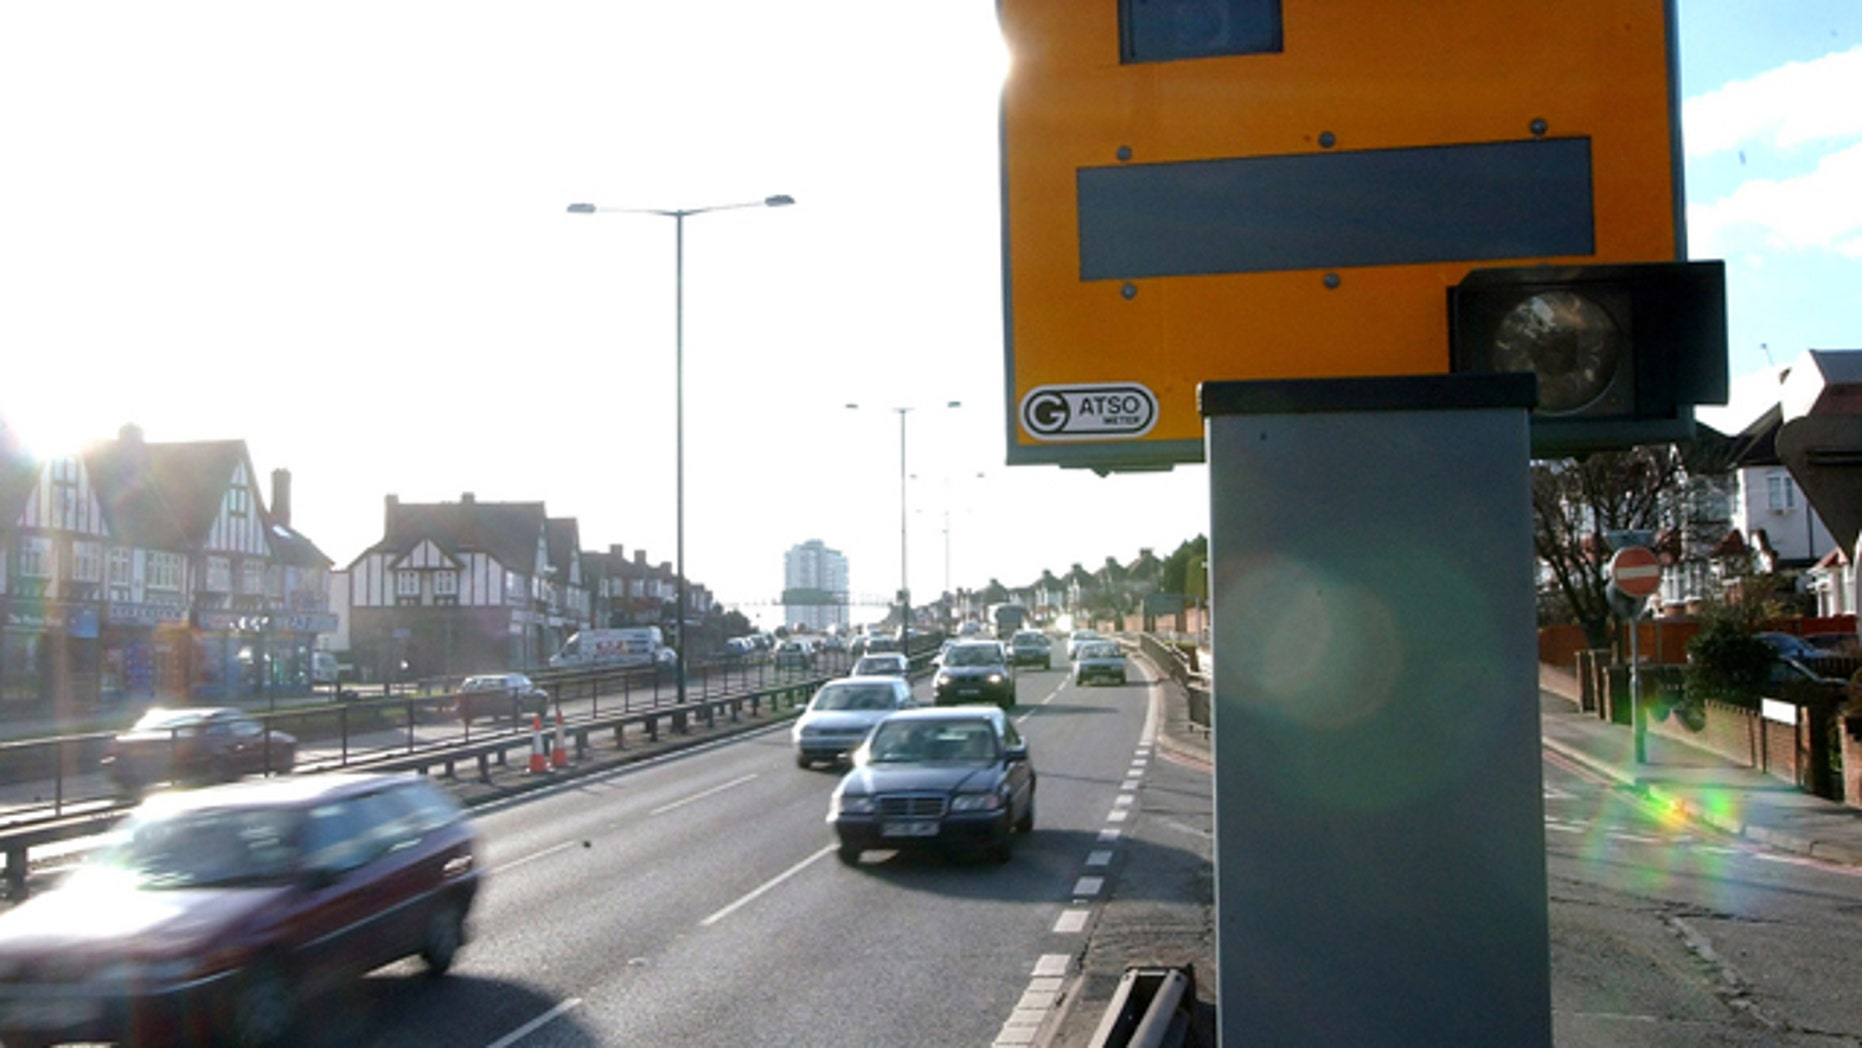 A speed camera watches over a highway in England.